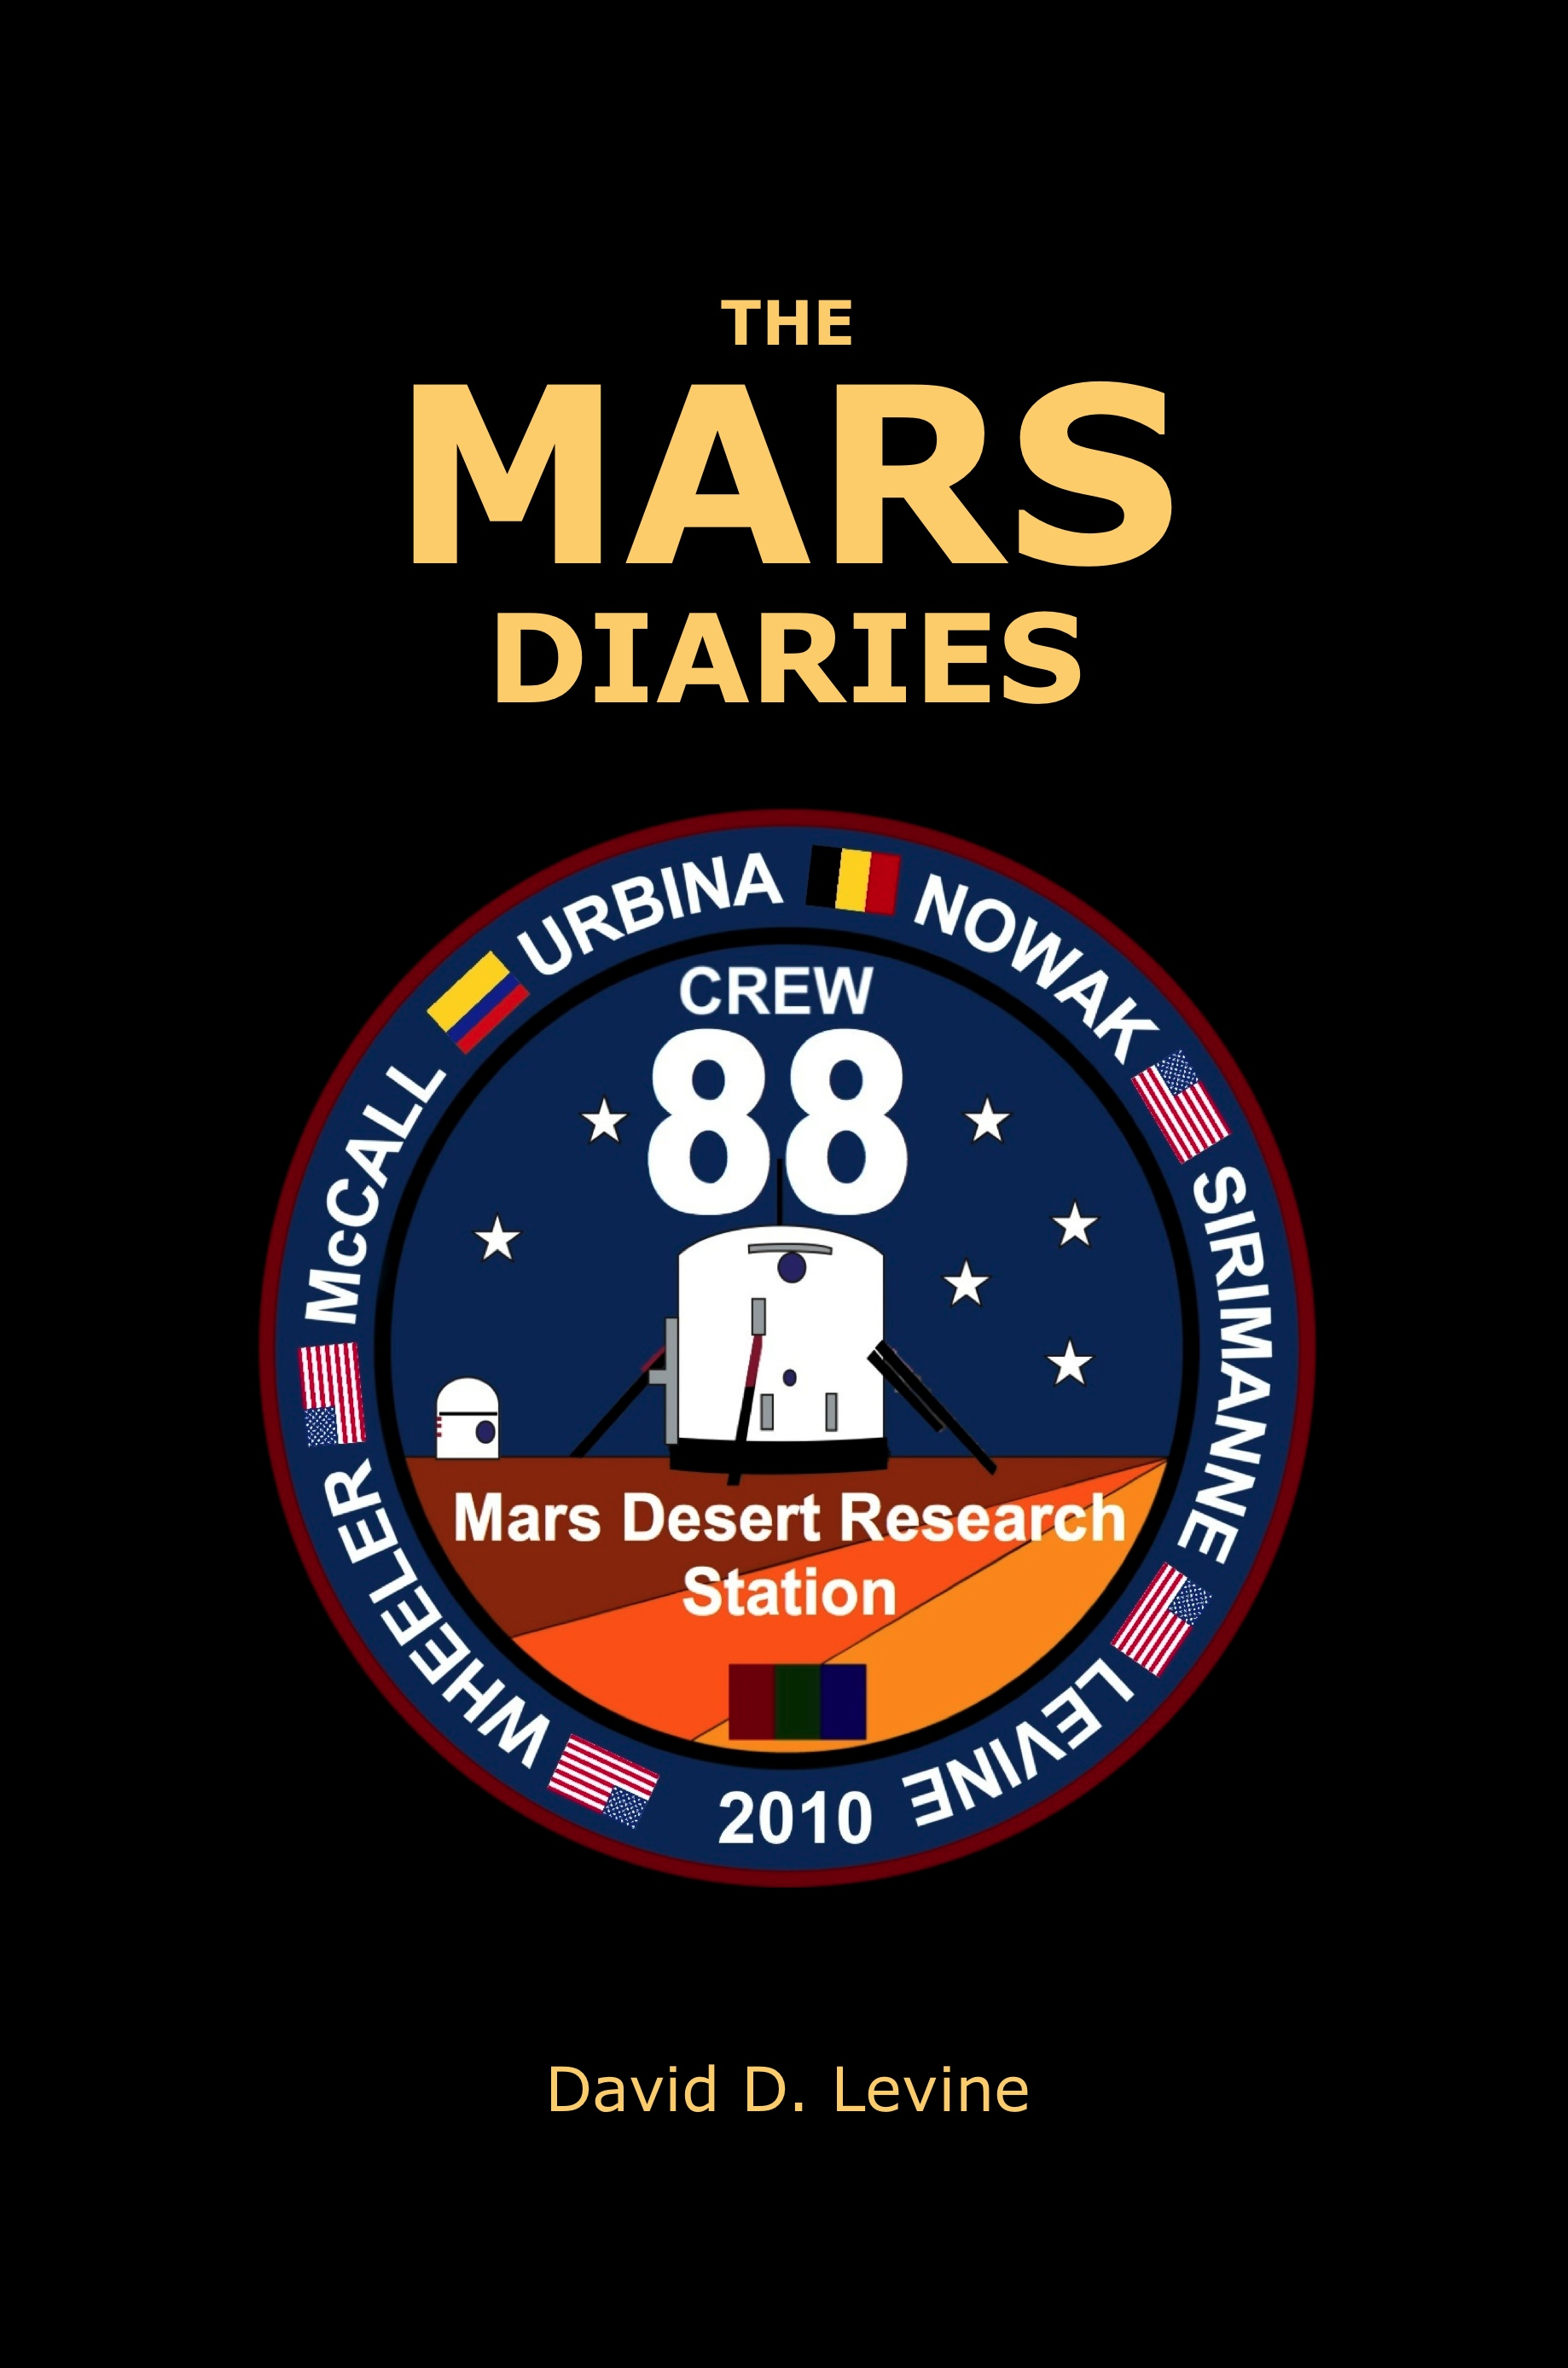 The Mars Diaries cover